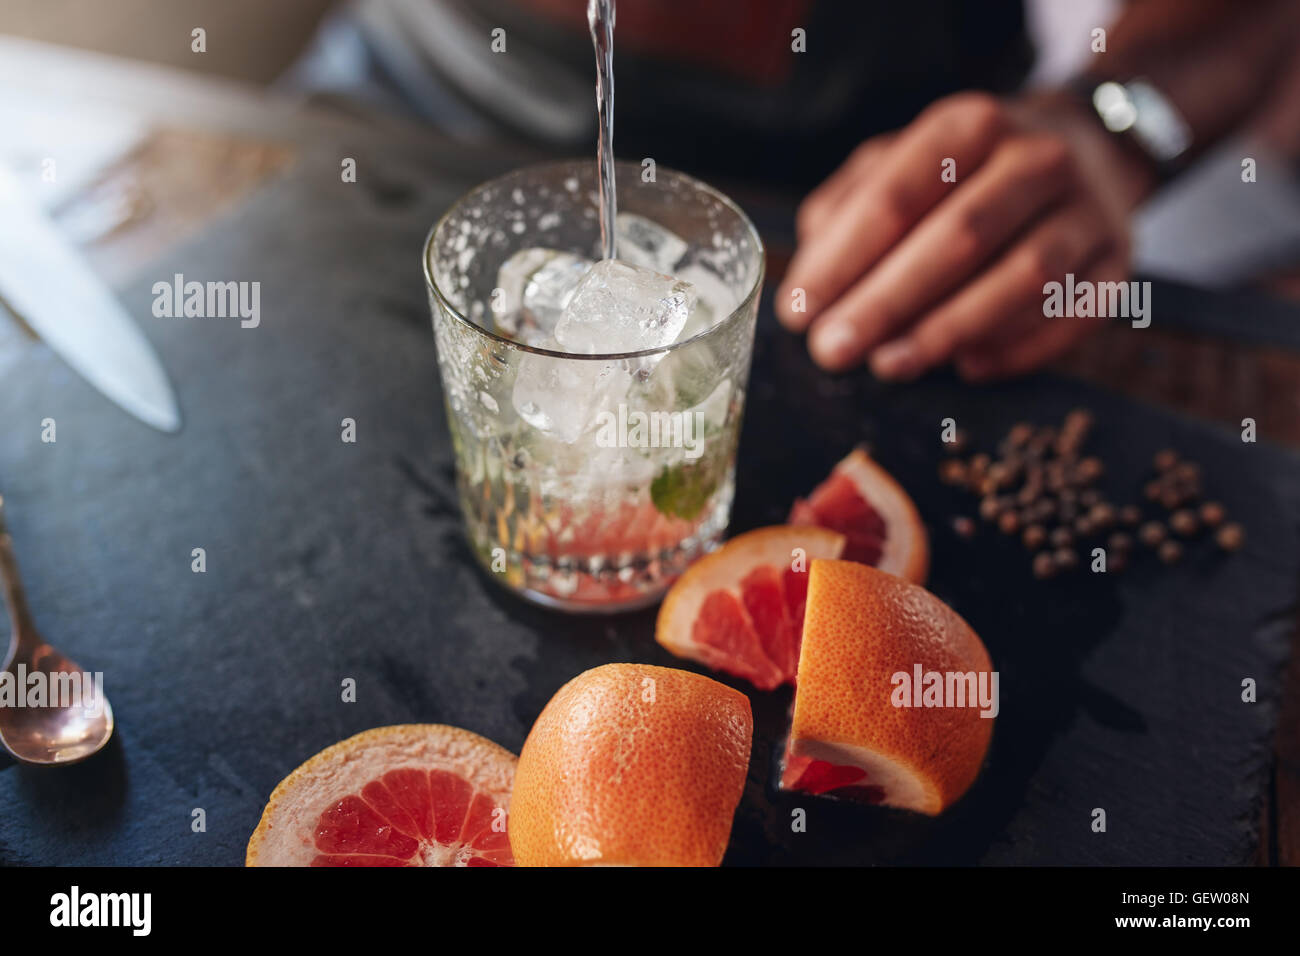 Closeup shot of bartender pouring drink into a glass full of ice cubes with cut grapefruits and peppercorn on counter. - Stock Image